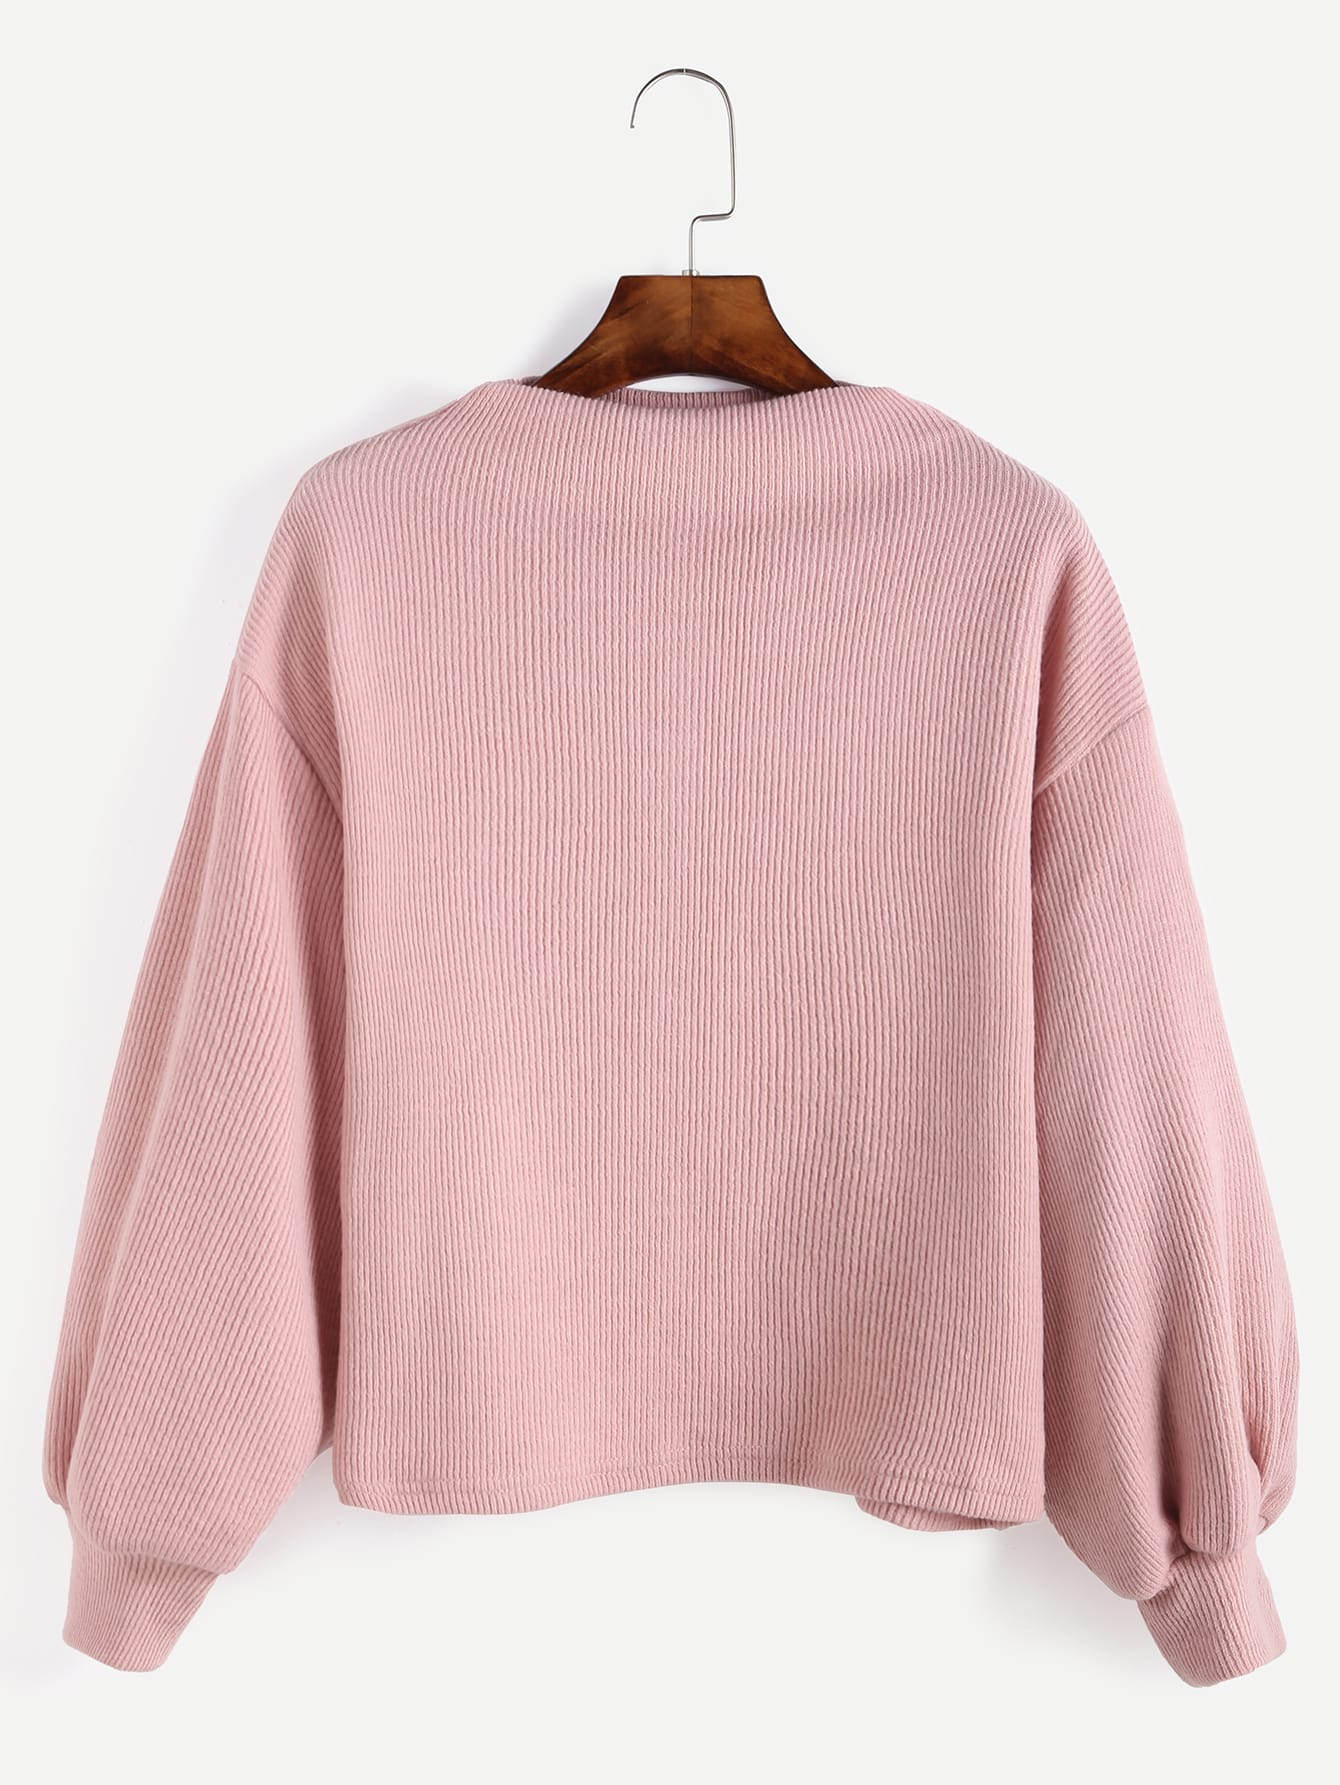 Pink Ribbed Lantern Sleeve Sweater sweater160929006